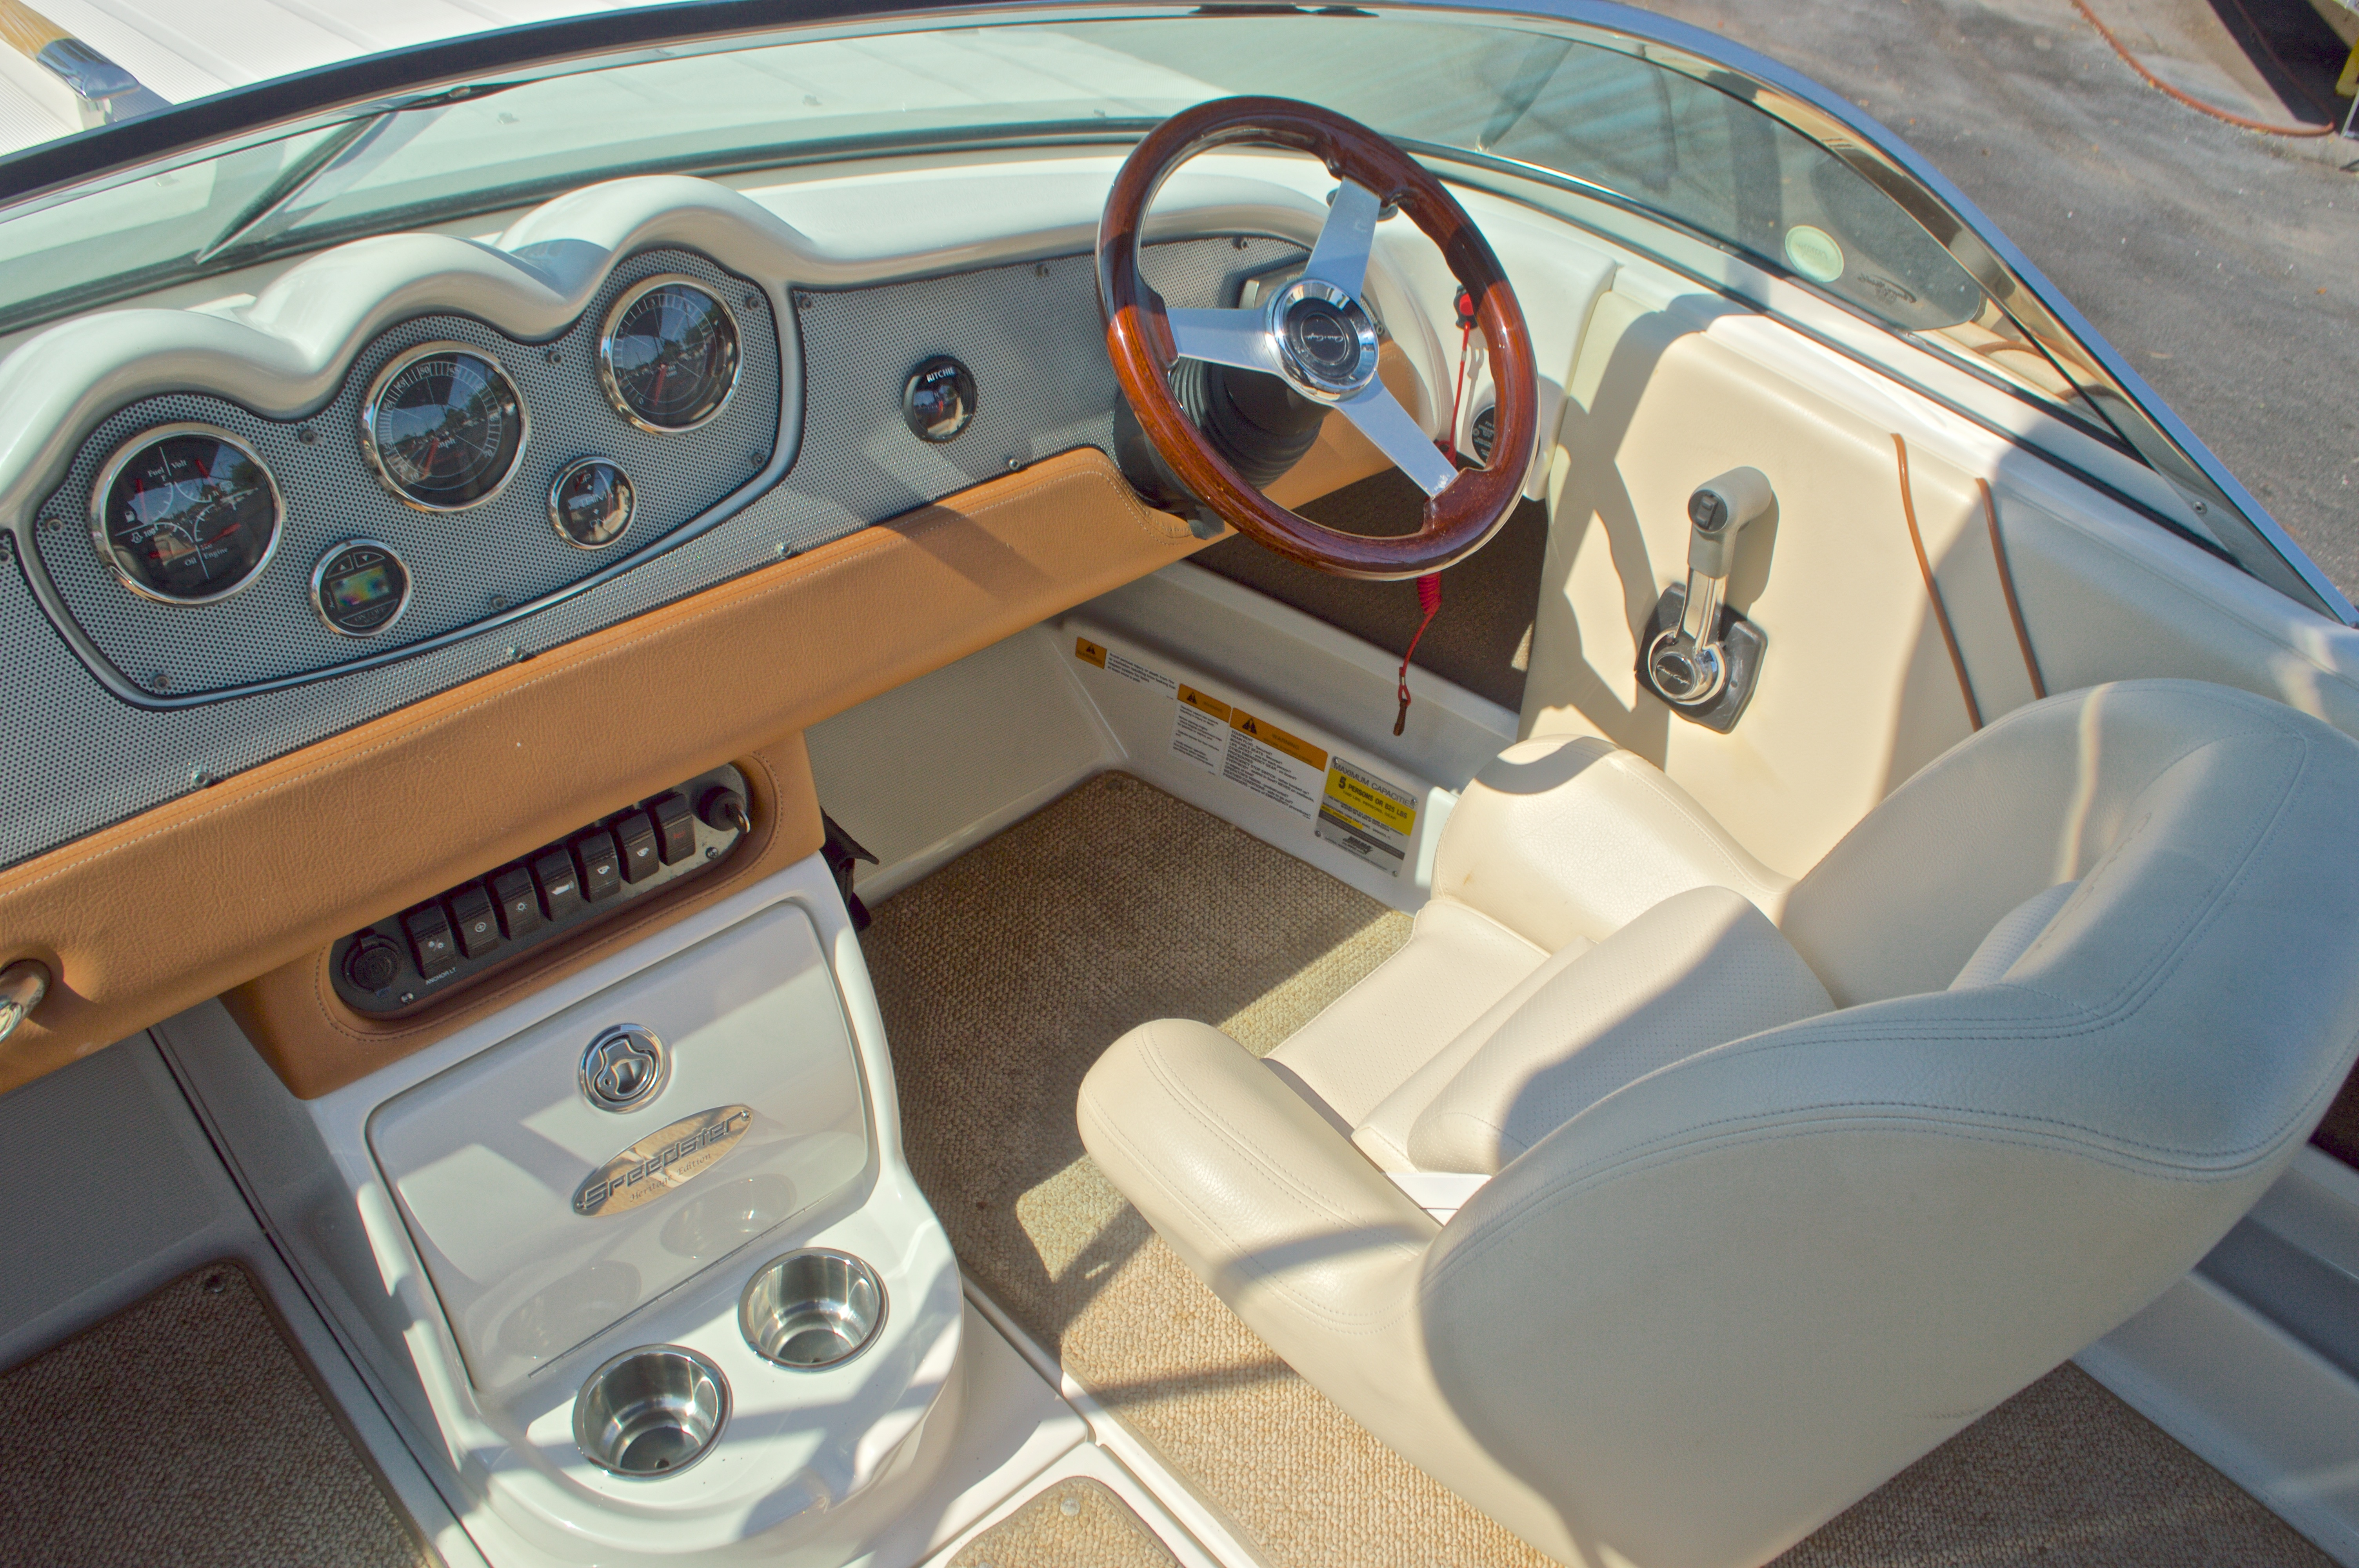 Thumbnail 40 for Used 2007 Chris-Craft 20 Speedster boat for sale in West Palm Beach, FL